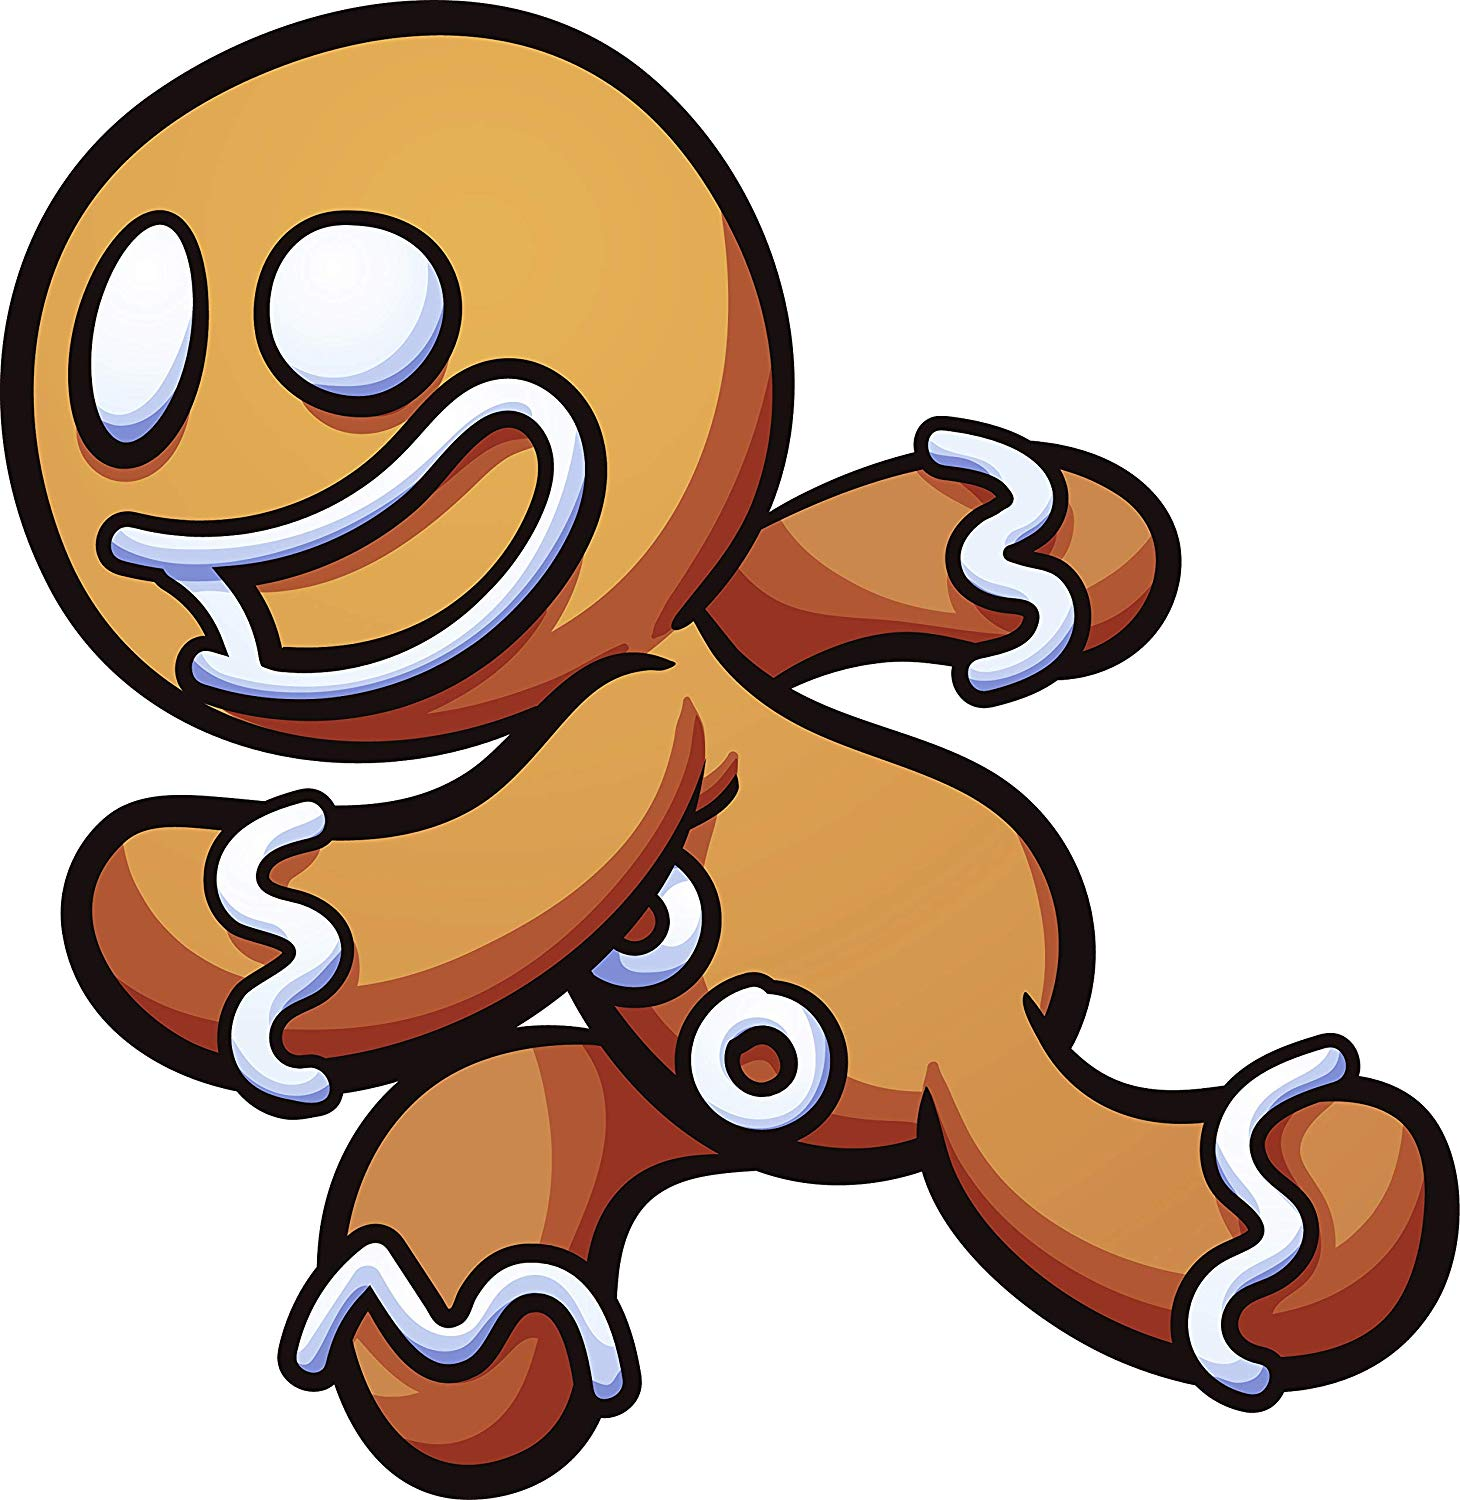 Amazon.com: Cute Silly Holiday Gingerbread Man Cartoon Emoji.